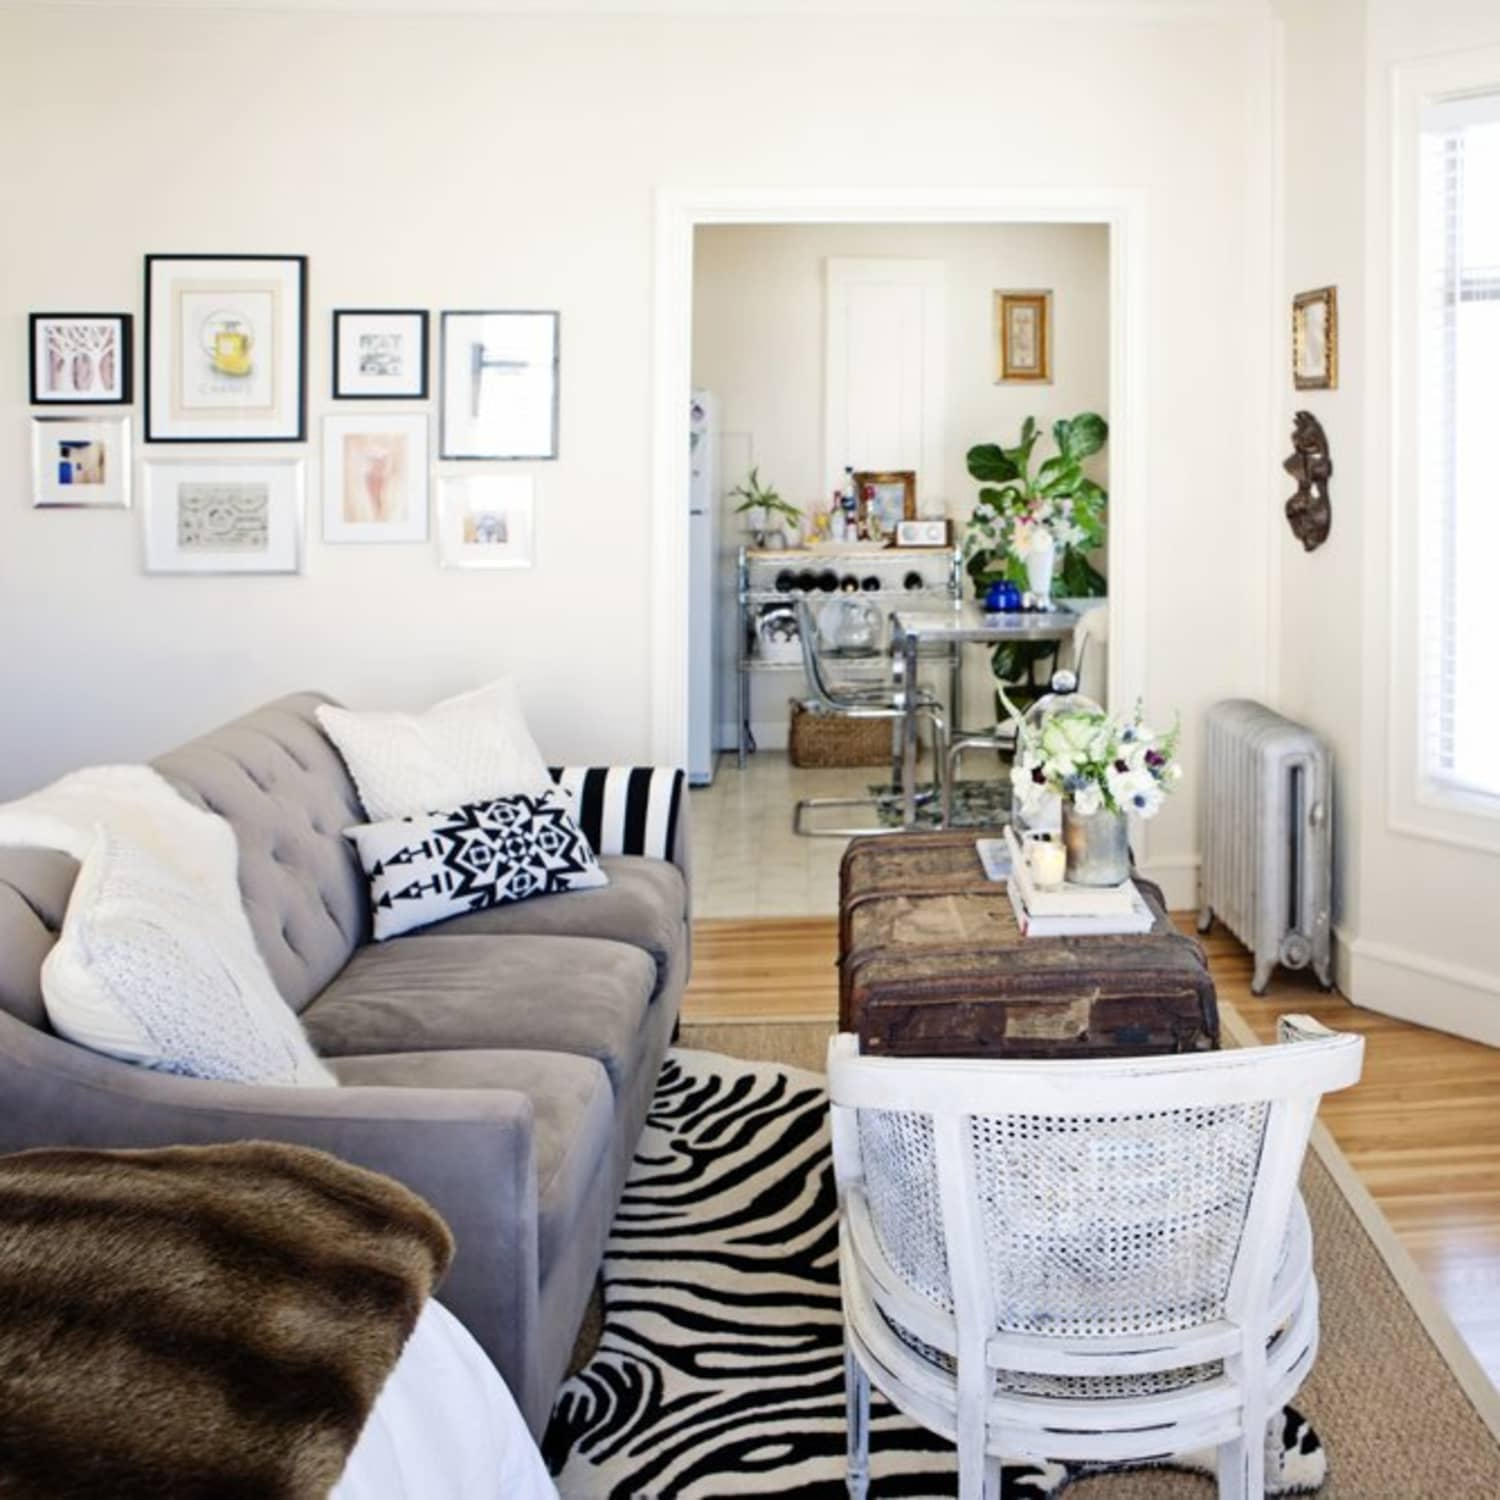 This What You Can Really Expect From Spaces Smaller Than 500 ...  Ft House Plans Loft on 300 sq ft. house plans, tiny house plans, 500 ft building, 500 ft signs, 400 square foot home plans, 500 sq ft cottage plans, 500 ft home,